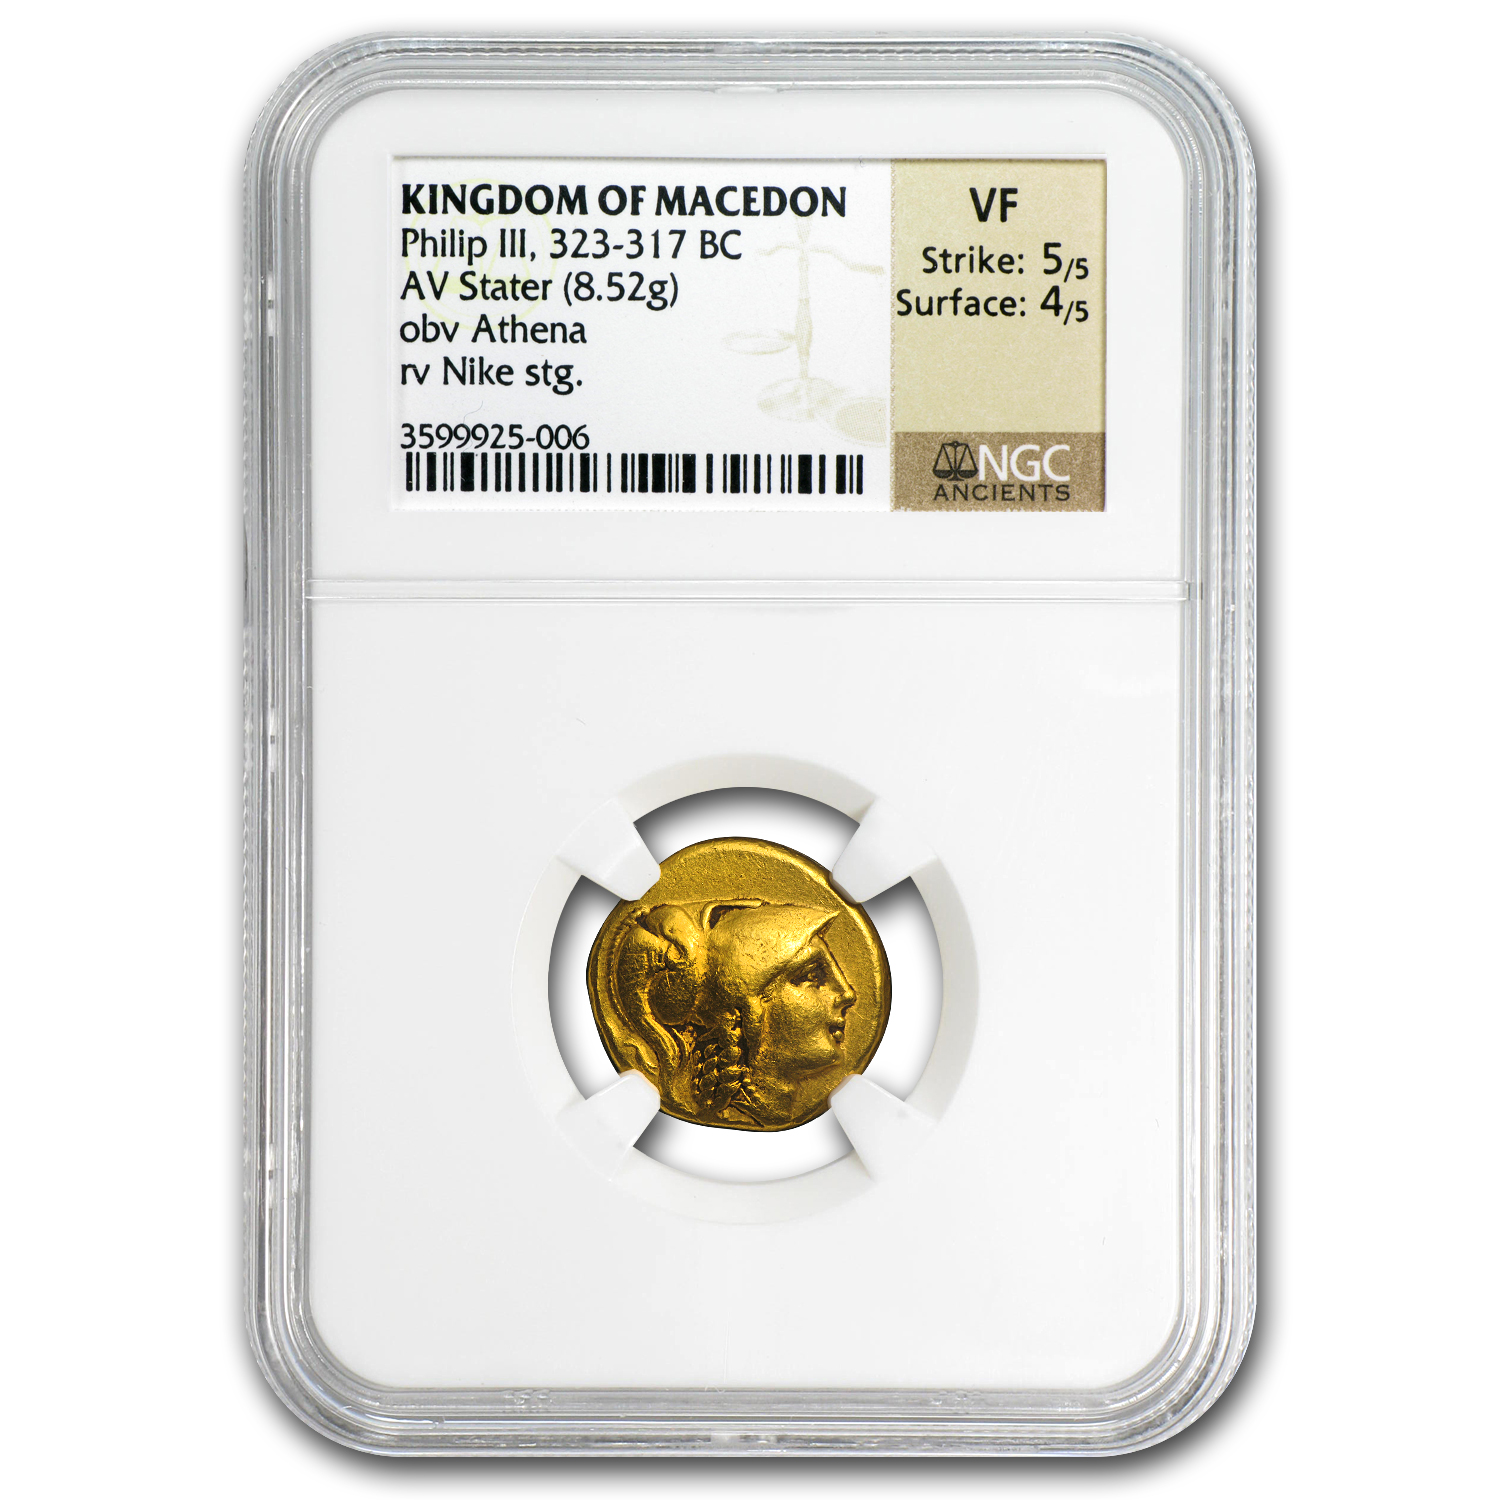 Macedonia Gold Stater of Philip III VF NGC (323-317 BC)